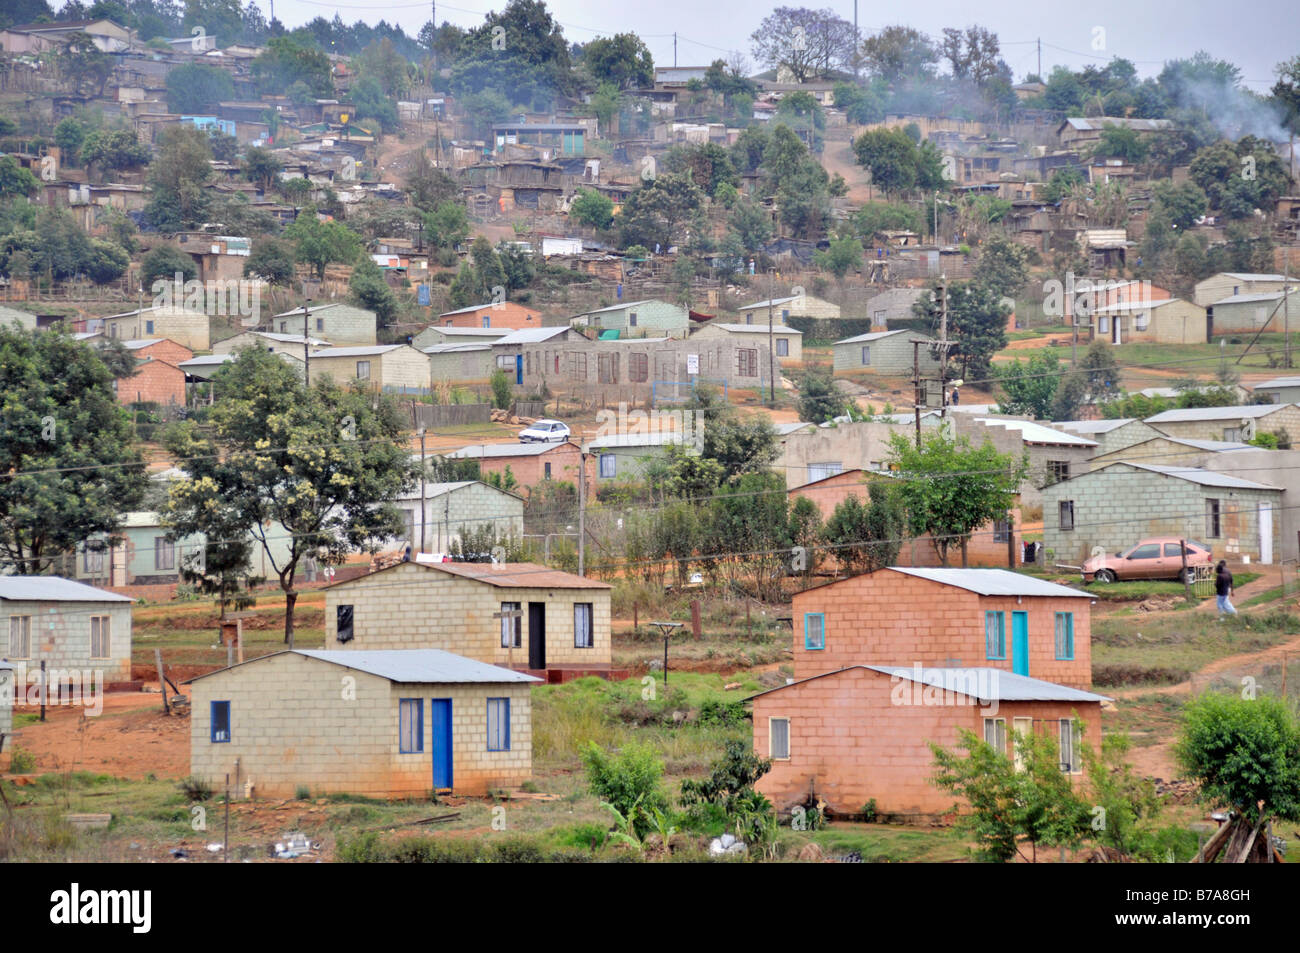 Colony of rough huts, township of the black citizens of Sabie, South Africa, Africa Stock Photo